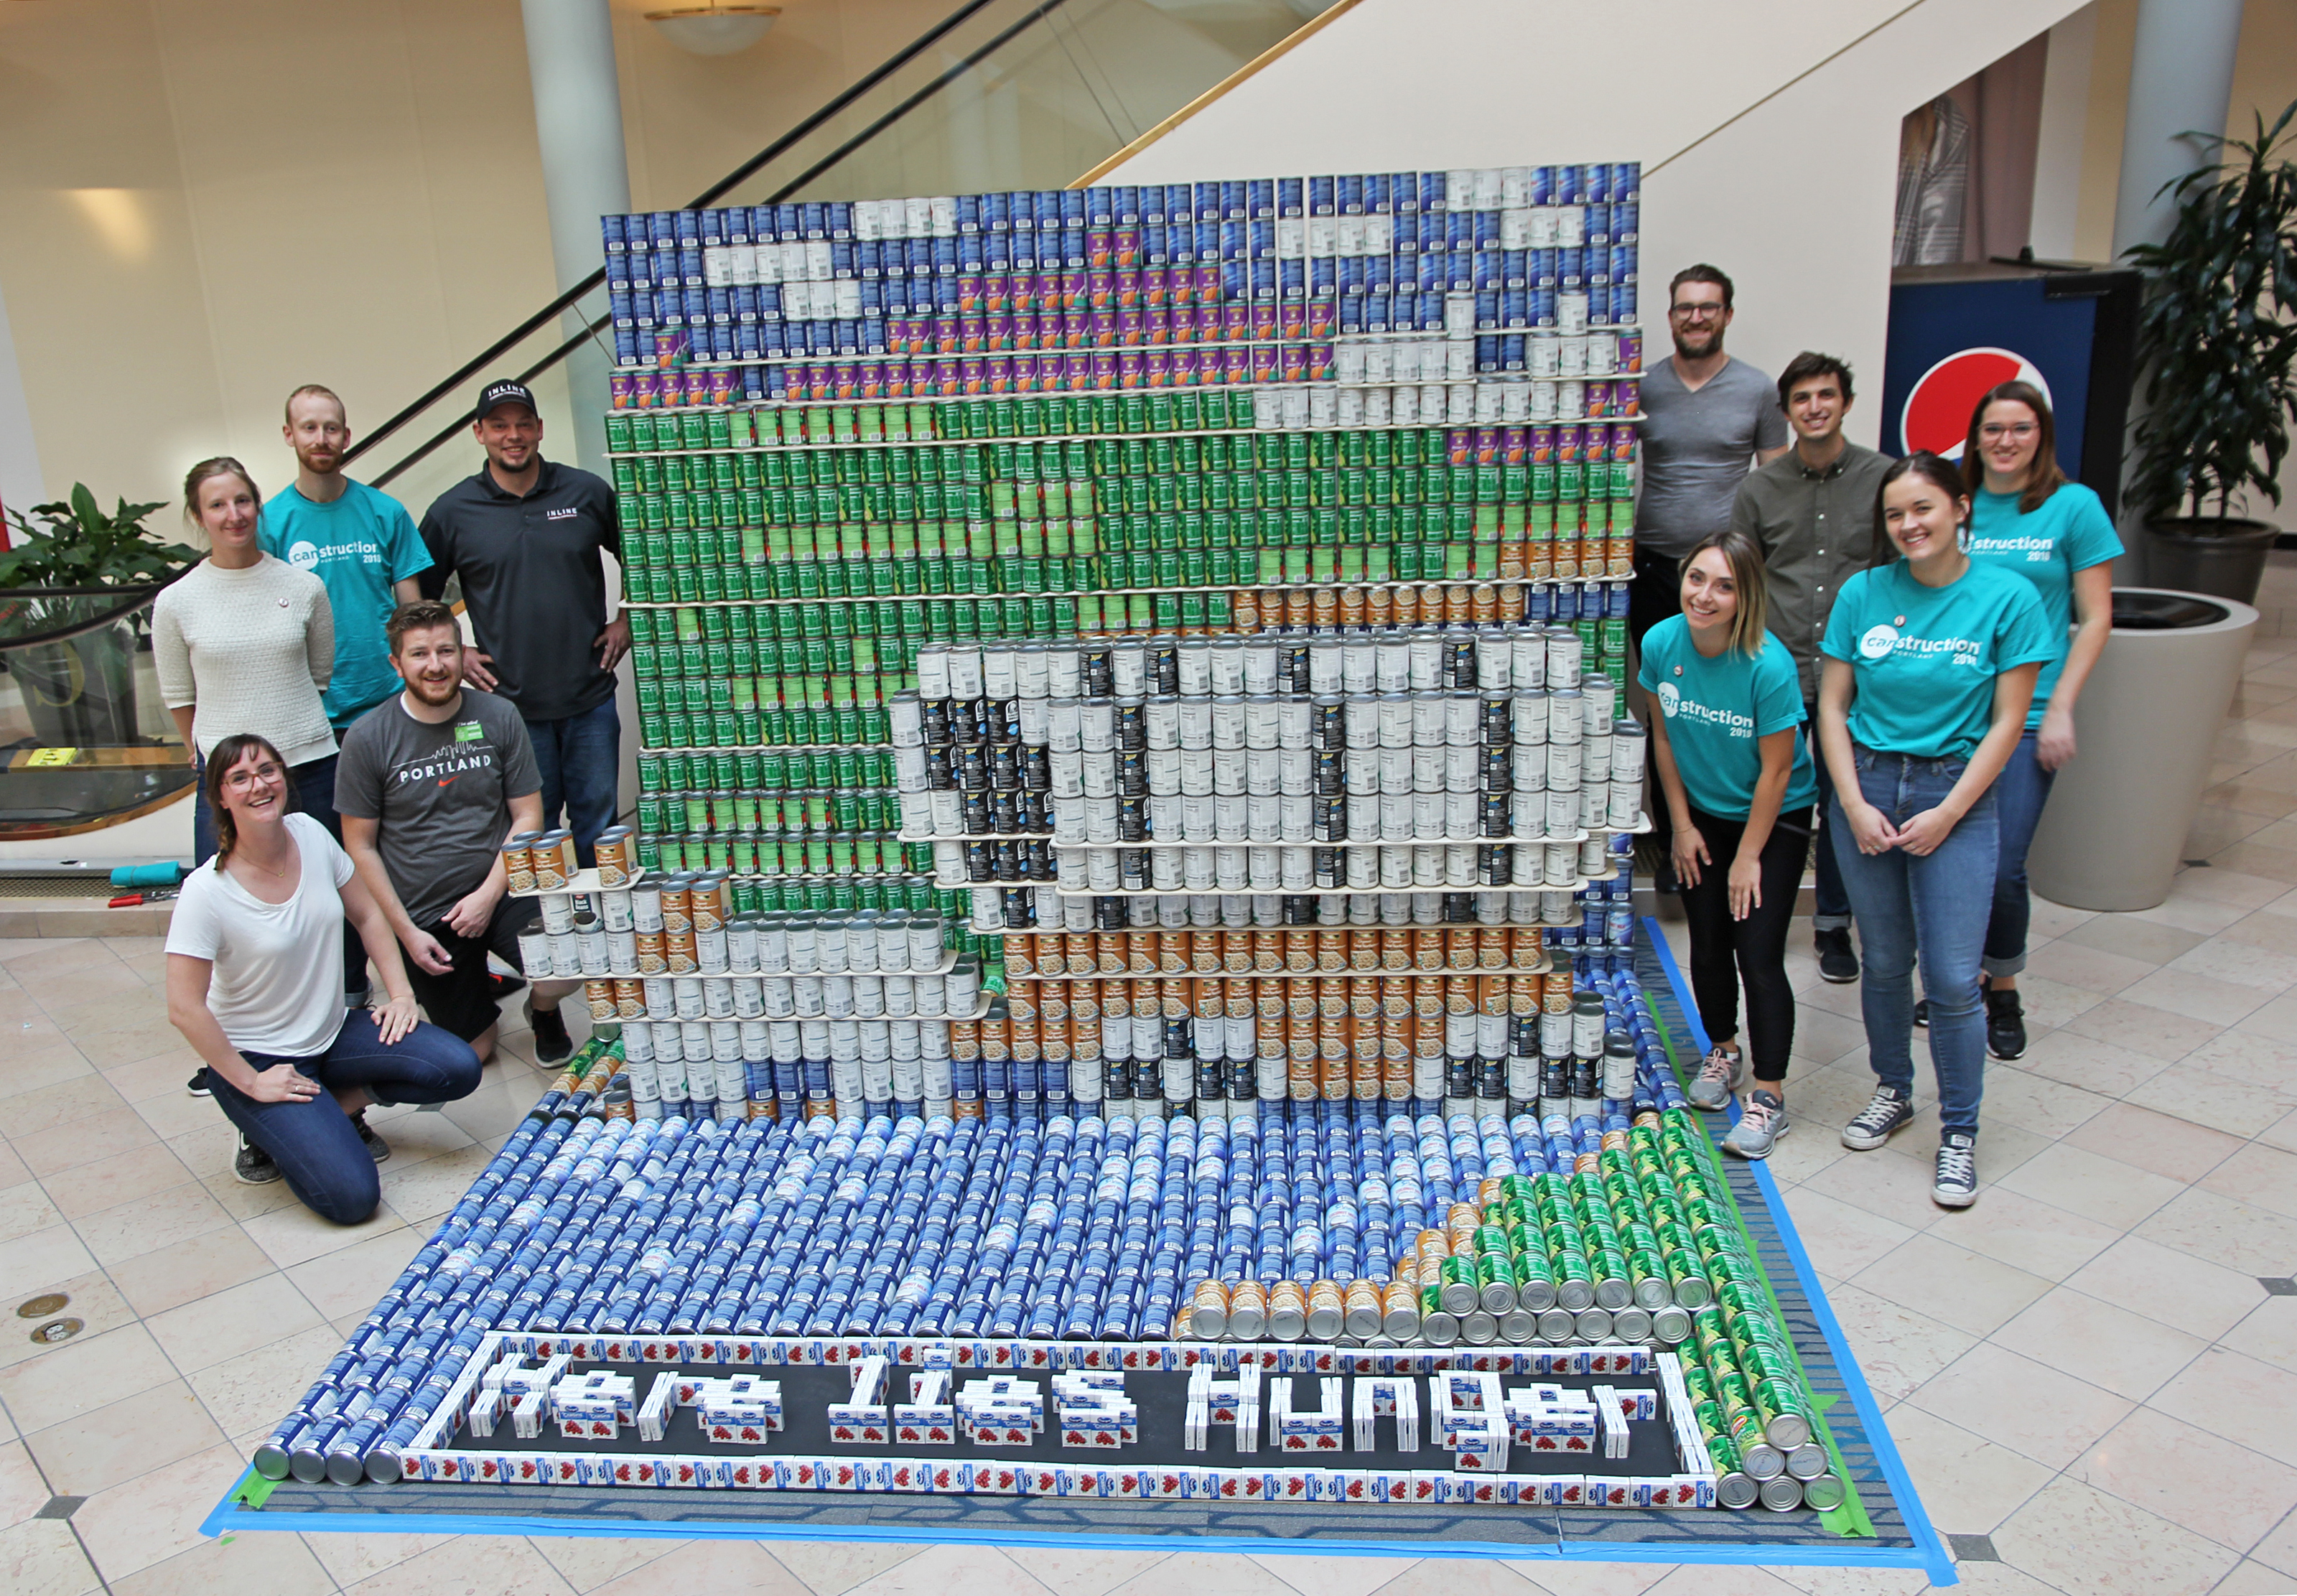 Here Lies Hunger Canstruction Portland Hennebery Eddy community service architects INLINE